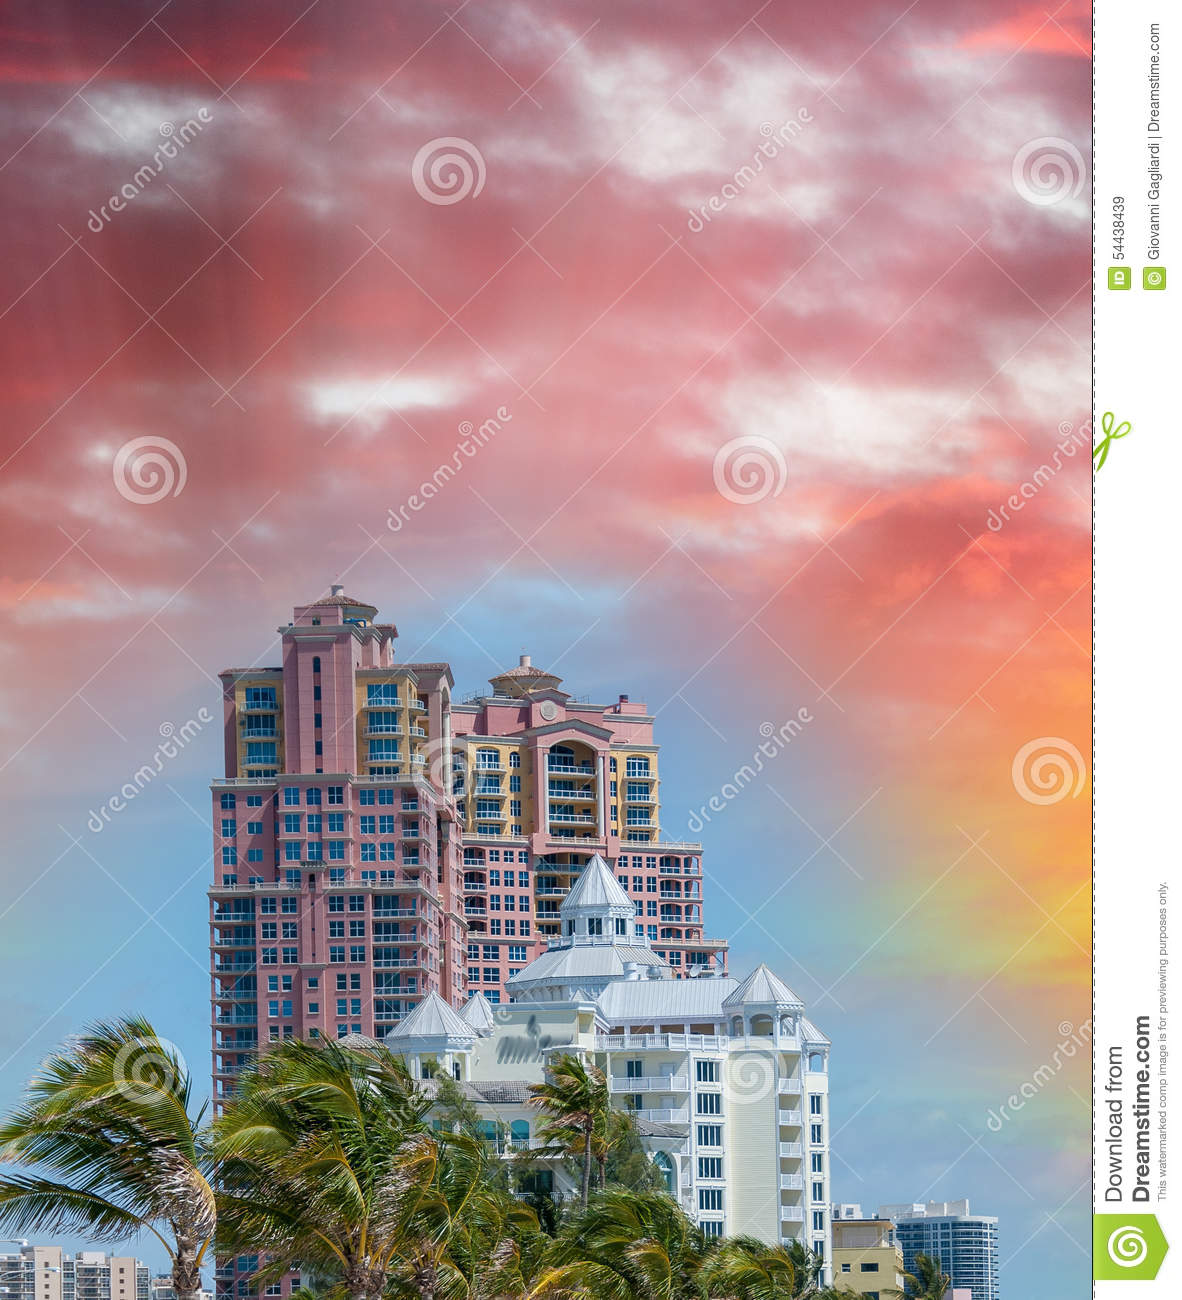 Skyline Of Fort Lauderdale At Sunset, Florida Stock Image